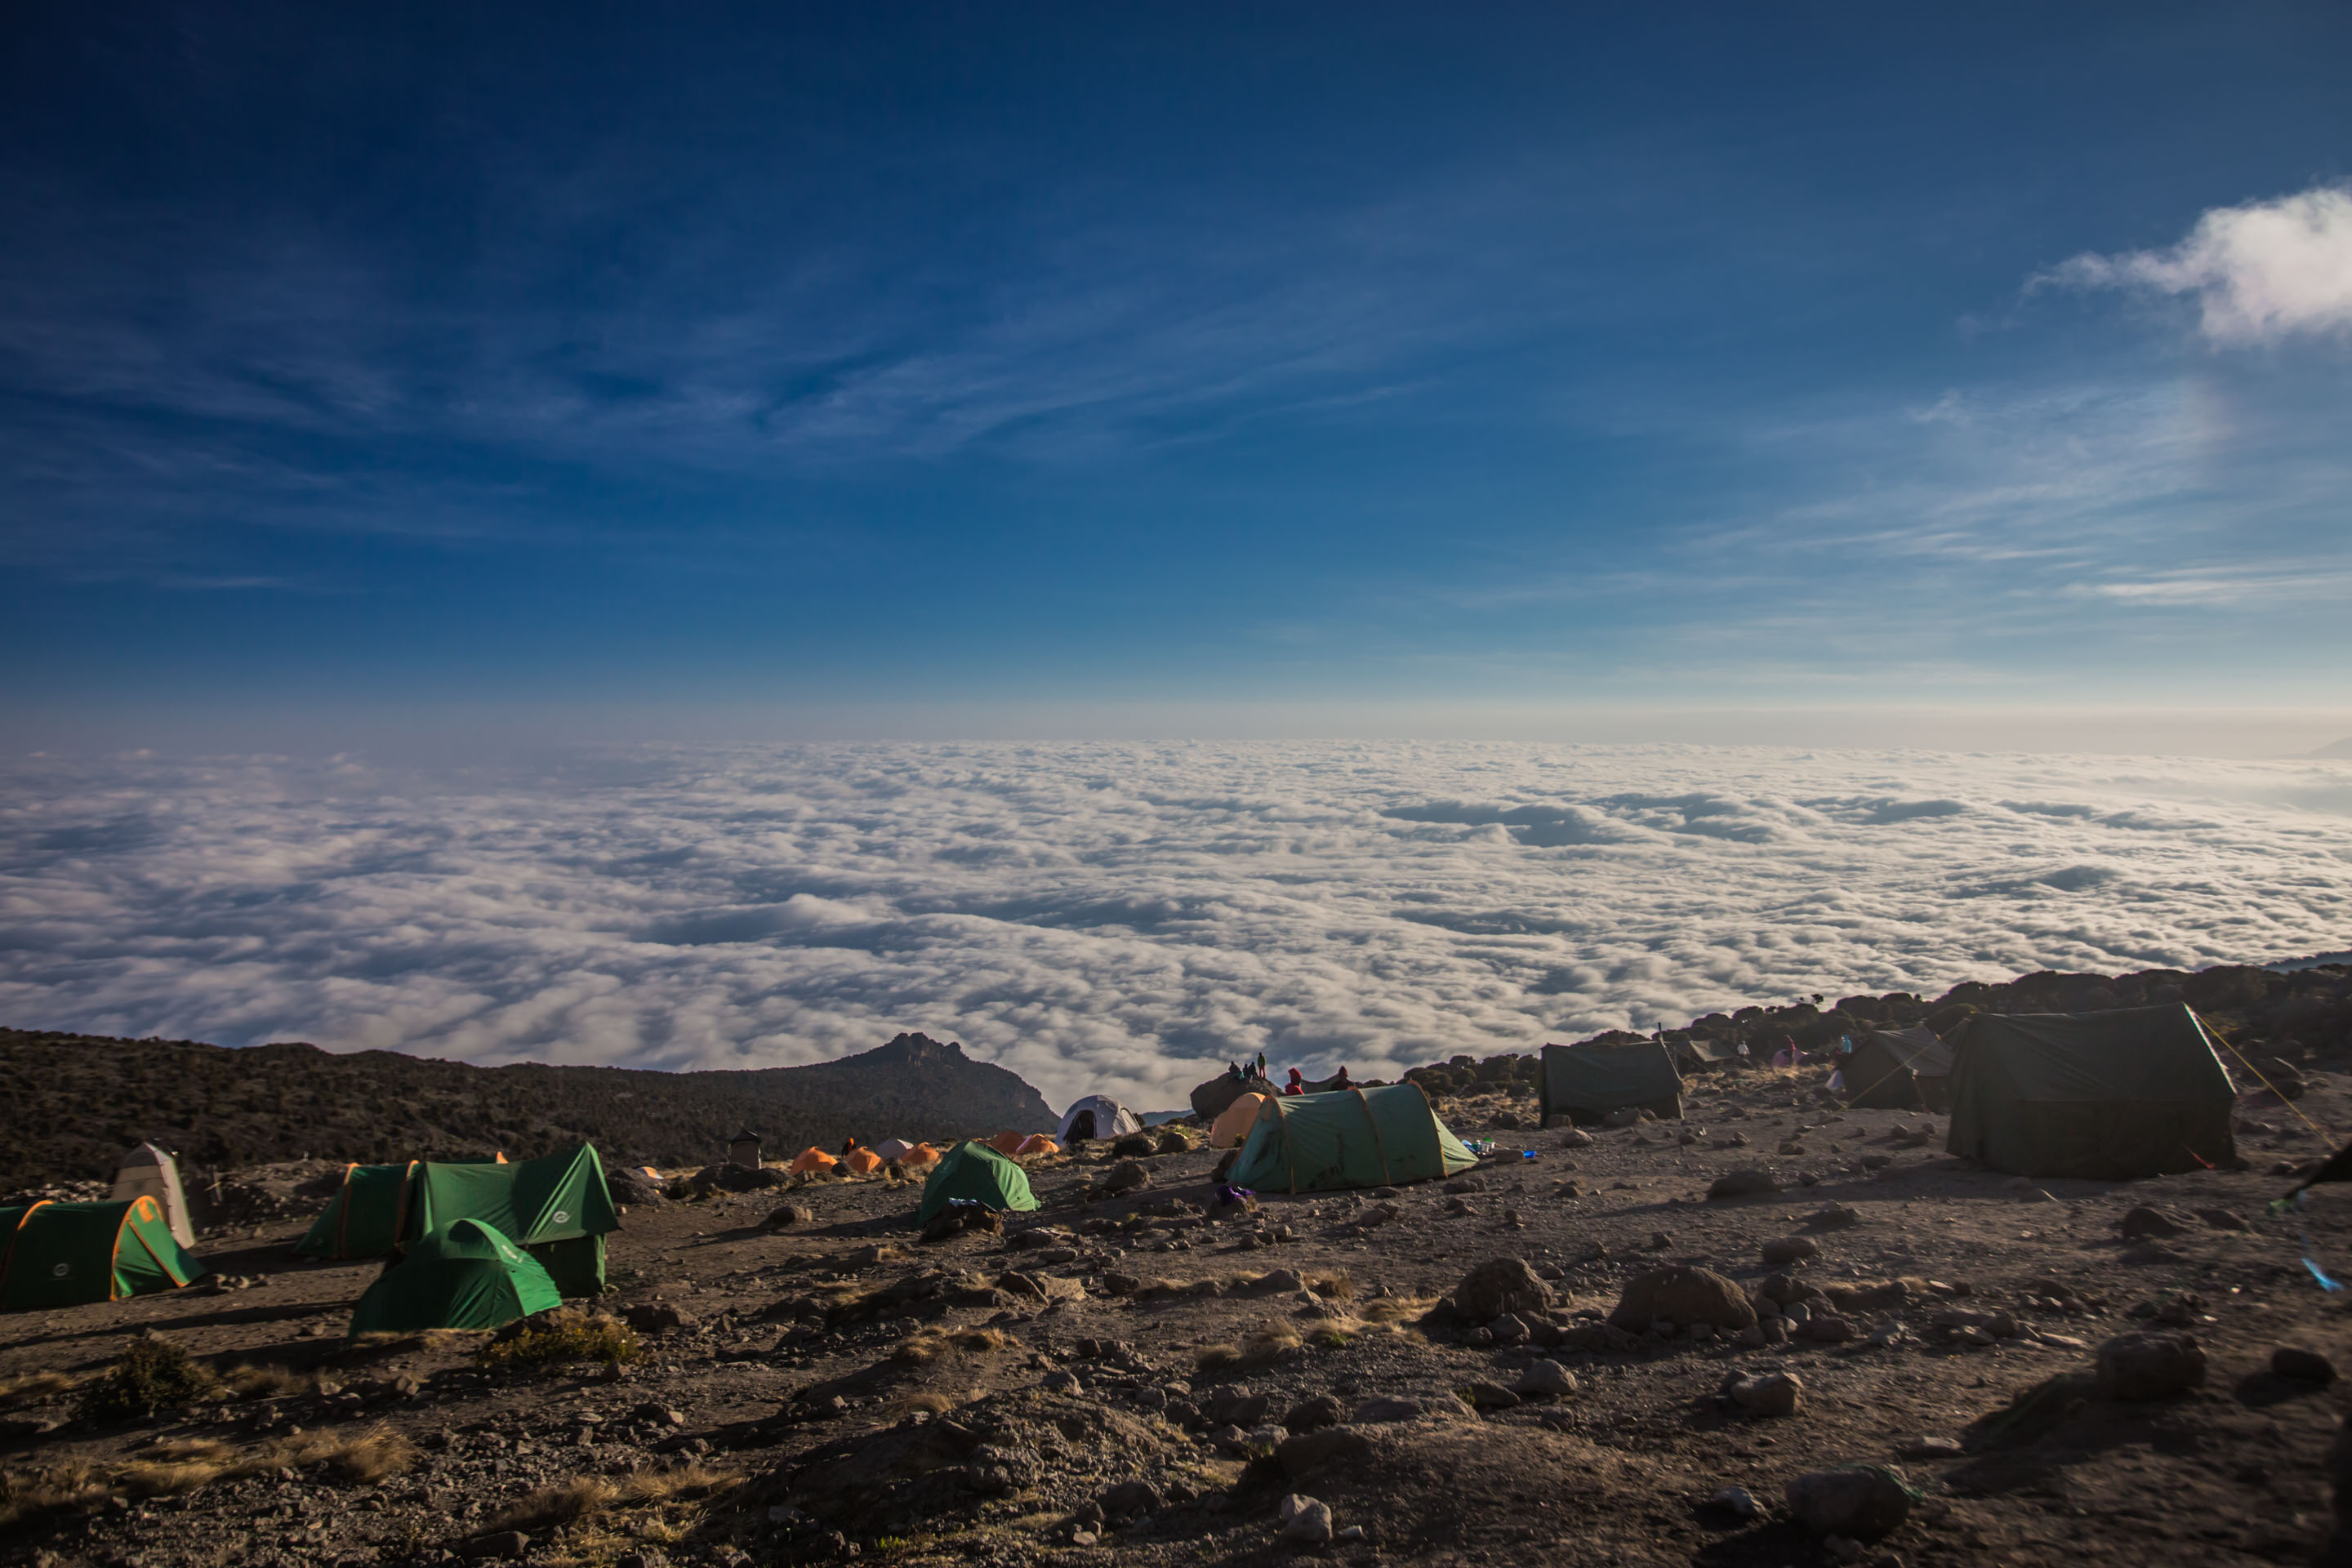 Stunning view over the clouds from Kilimanjaro